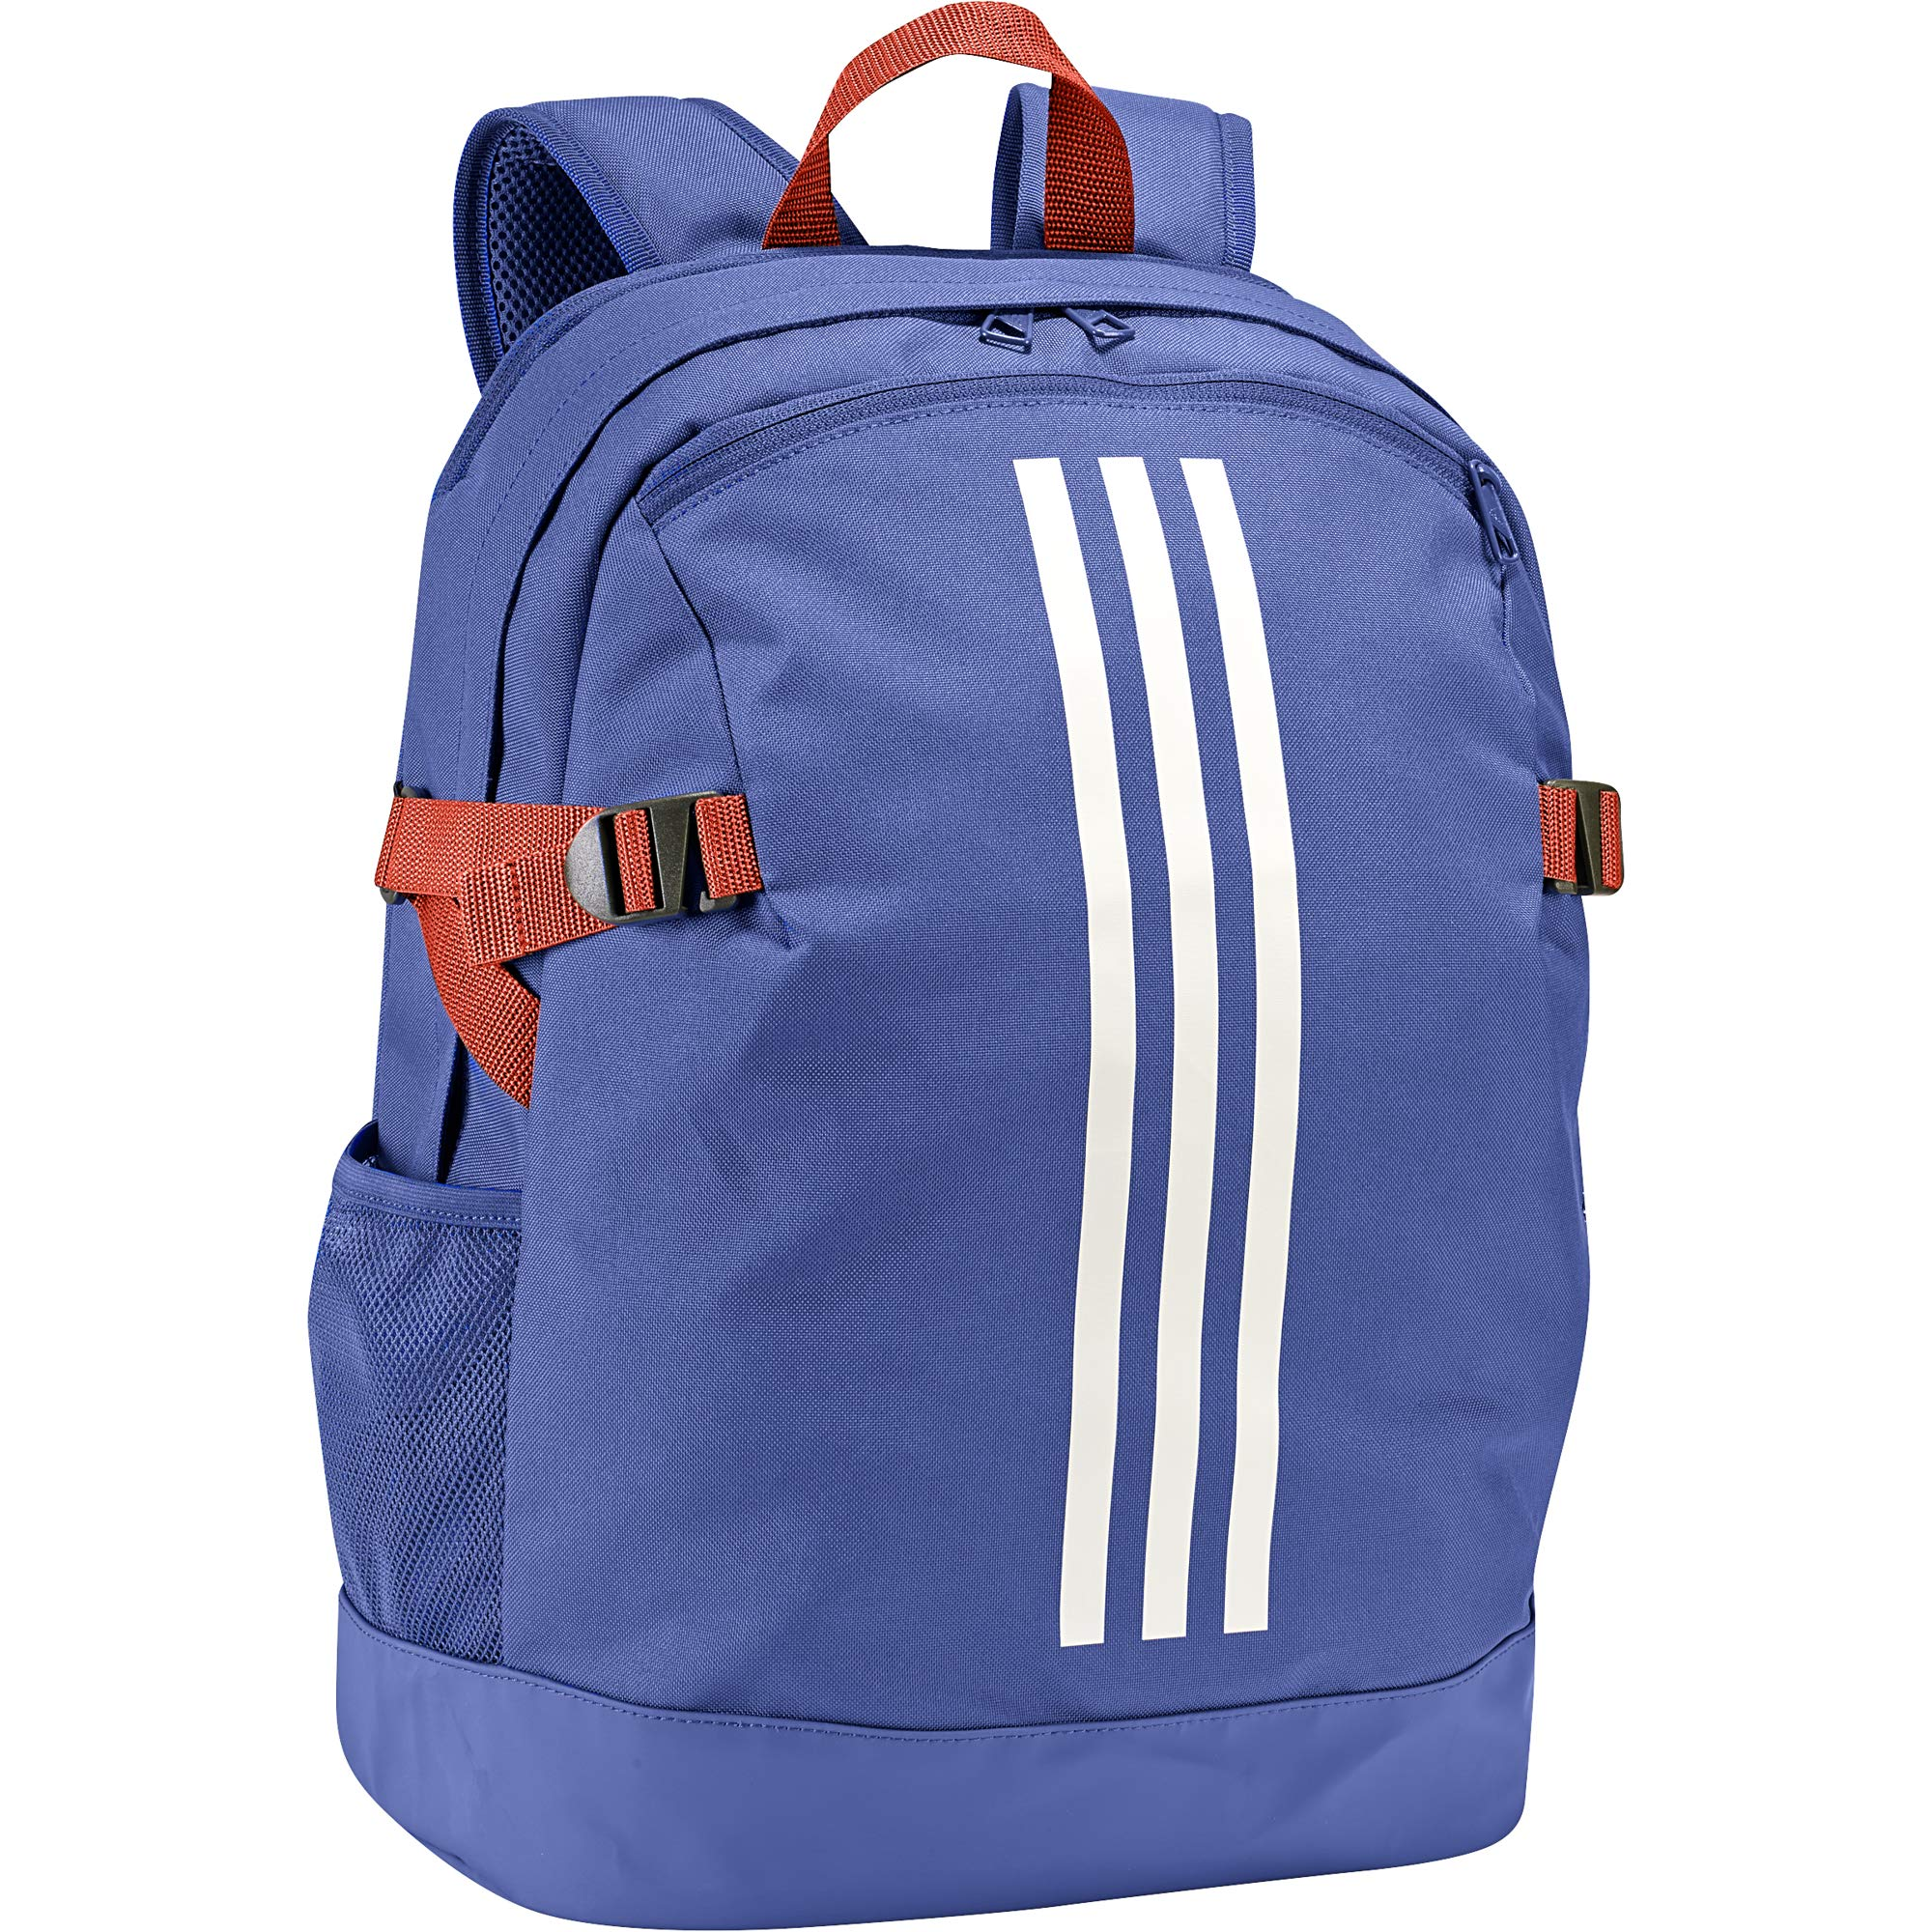 91q09shw6DL - adidas BP Power IV M Sports Backpack, Unisex Adulto